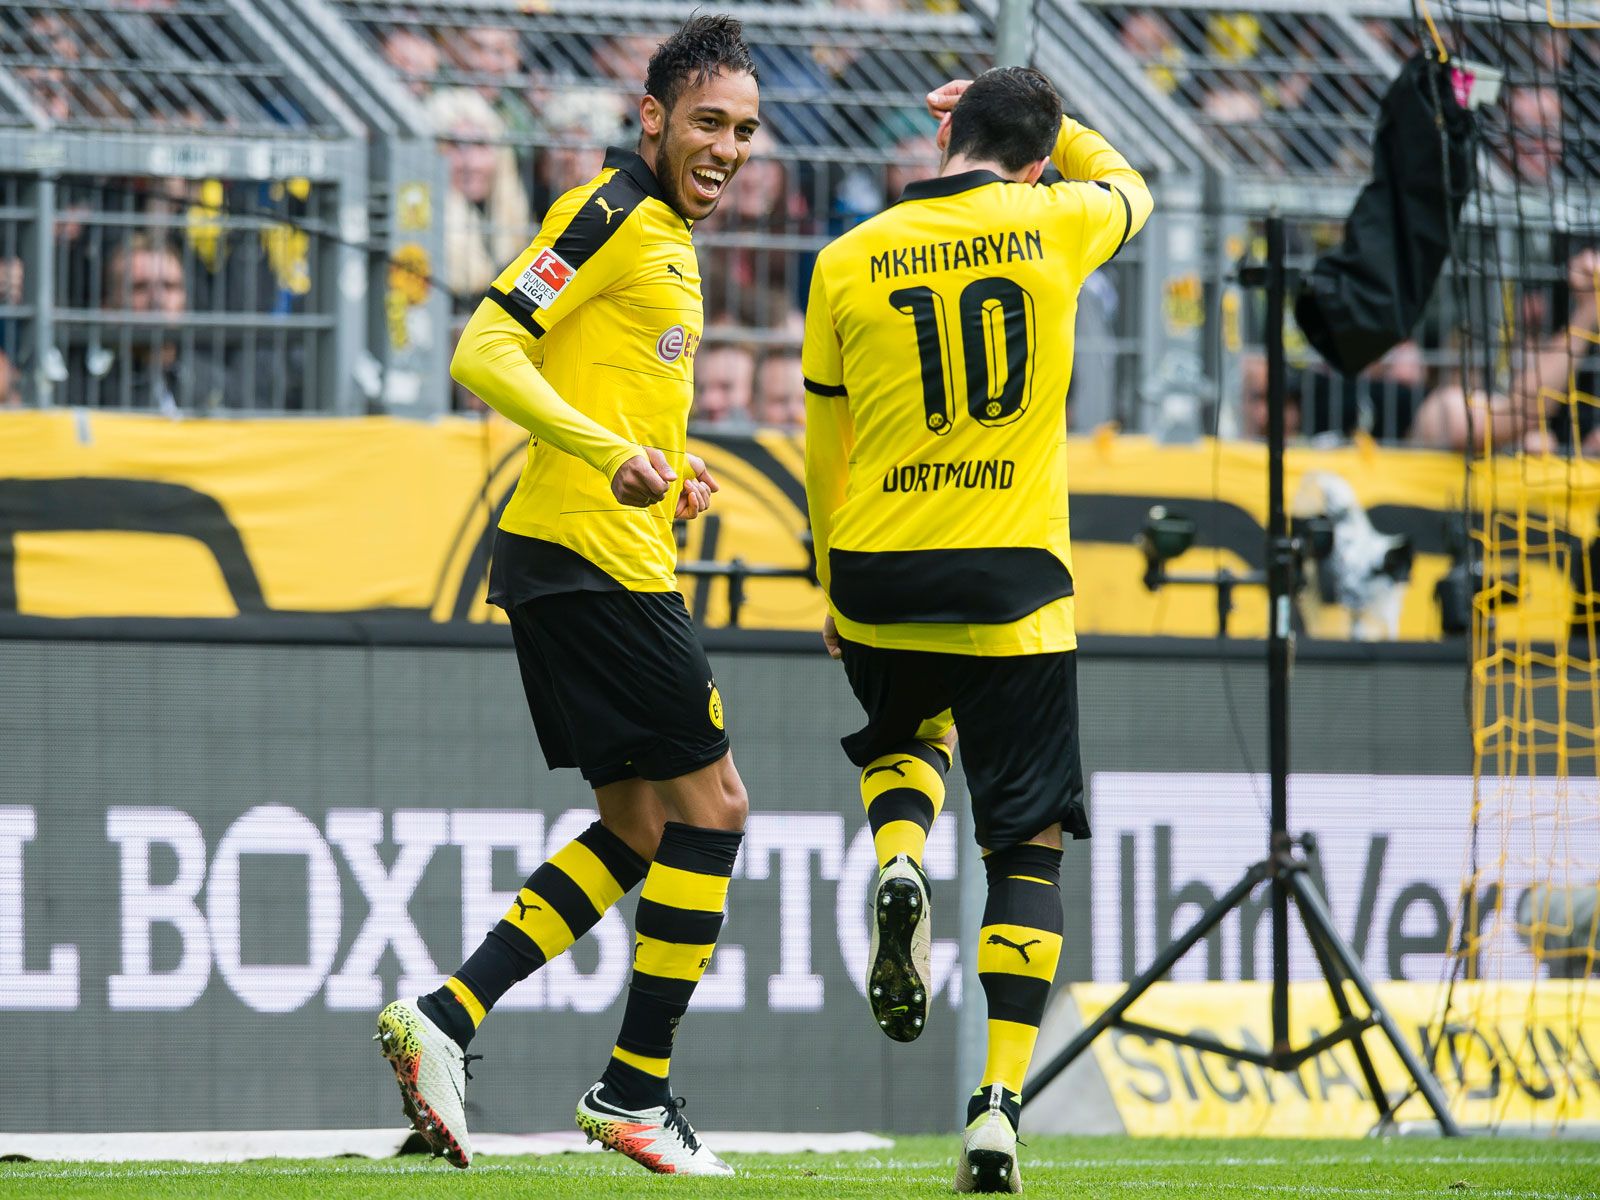 Pierre-Emerick Aubameyang and Henrikh Mkhitaryan are reunited at Arsenal